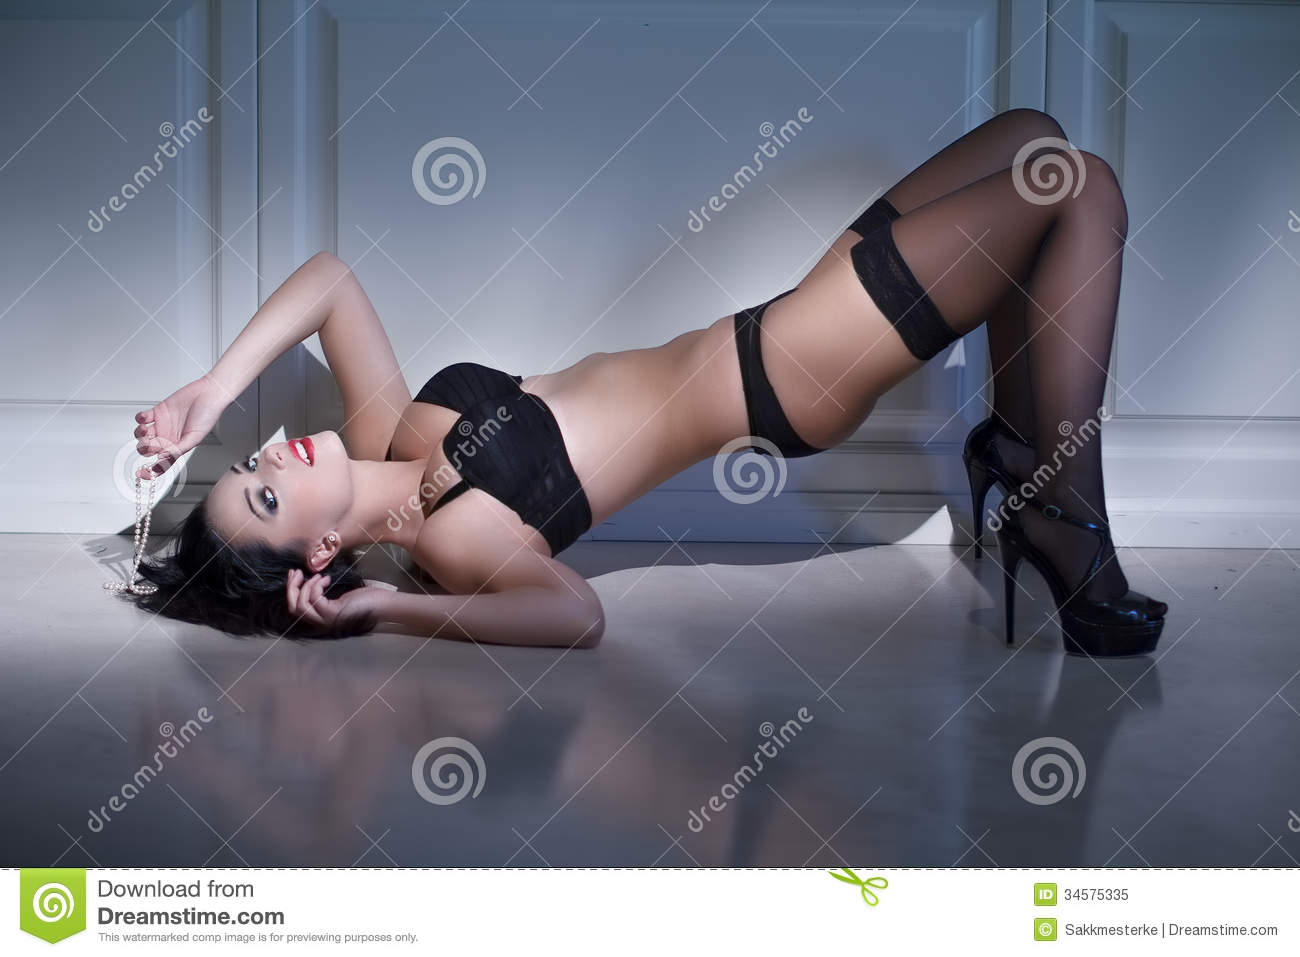 Images of sex positions demonstrated by humans nudes scenes